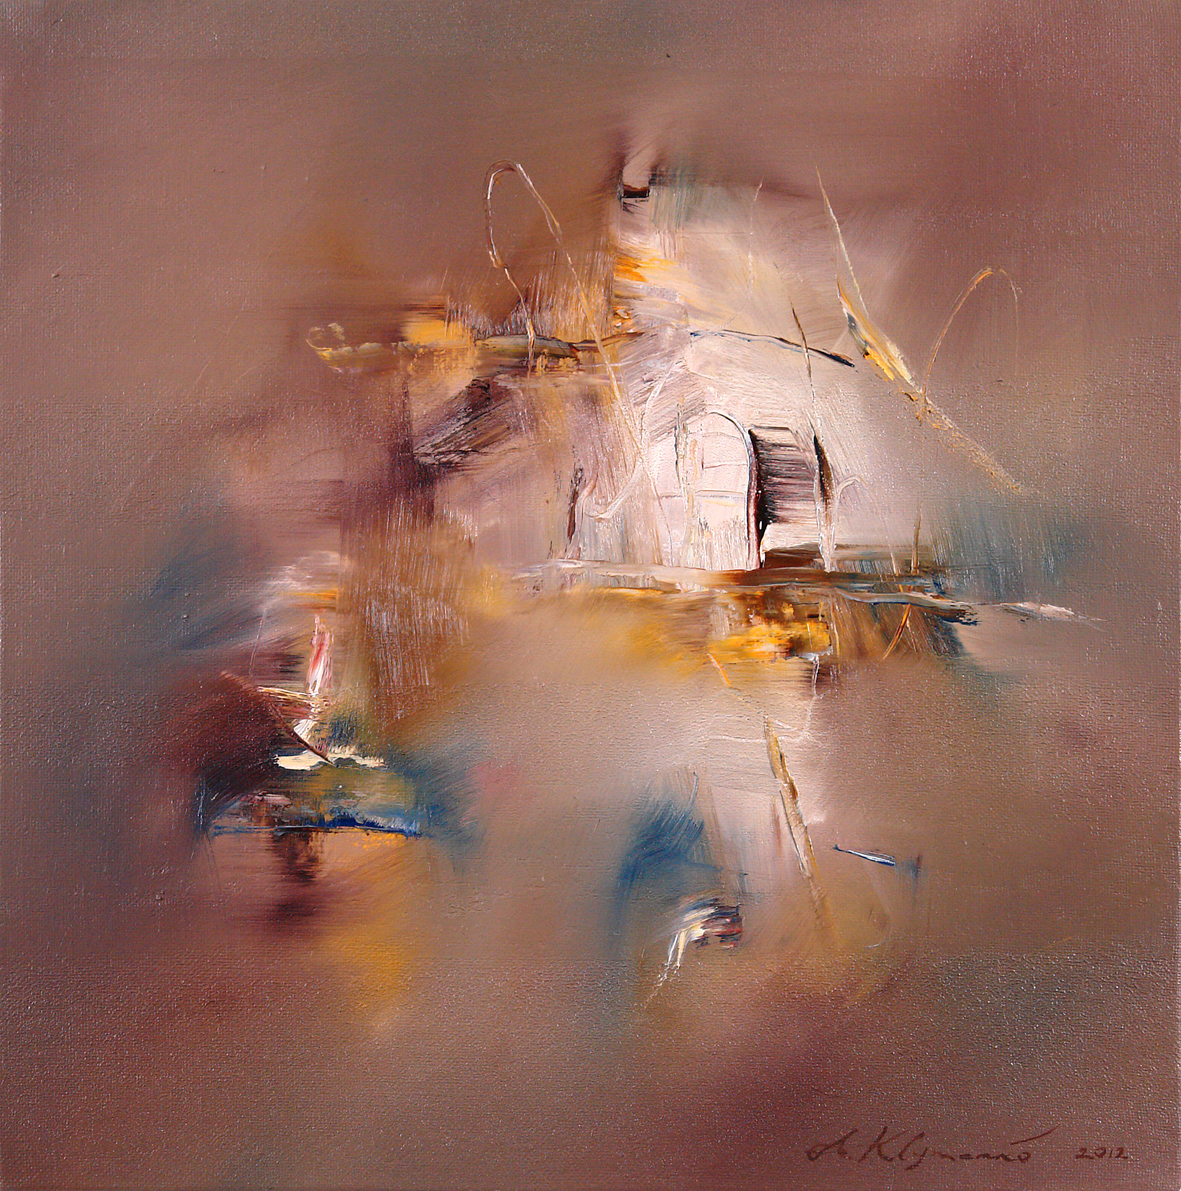 INNER LIGHT, 2013, oil jn canvas, 80 x 80cm. Private collection